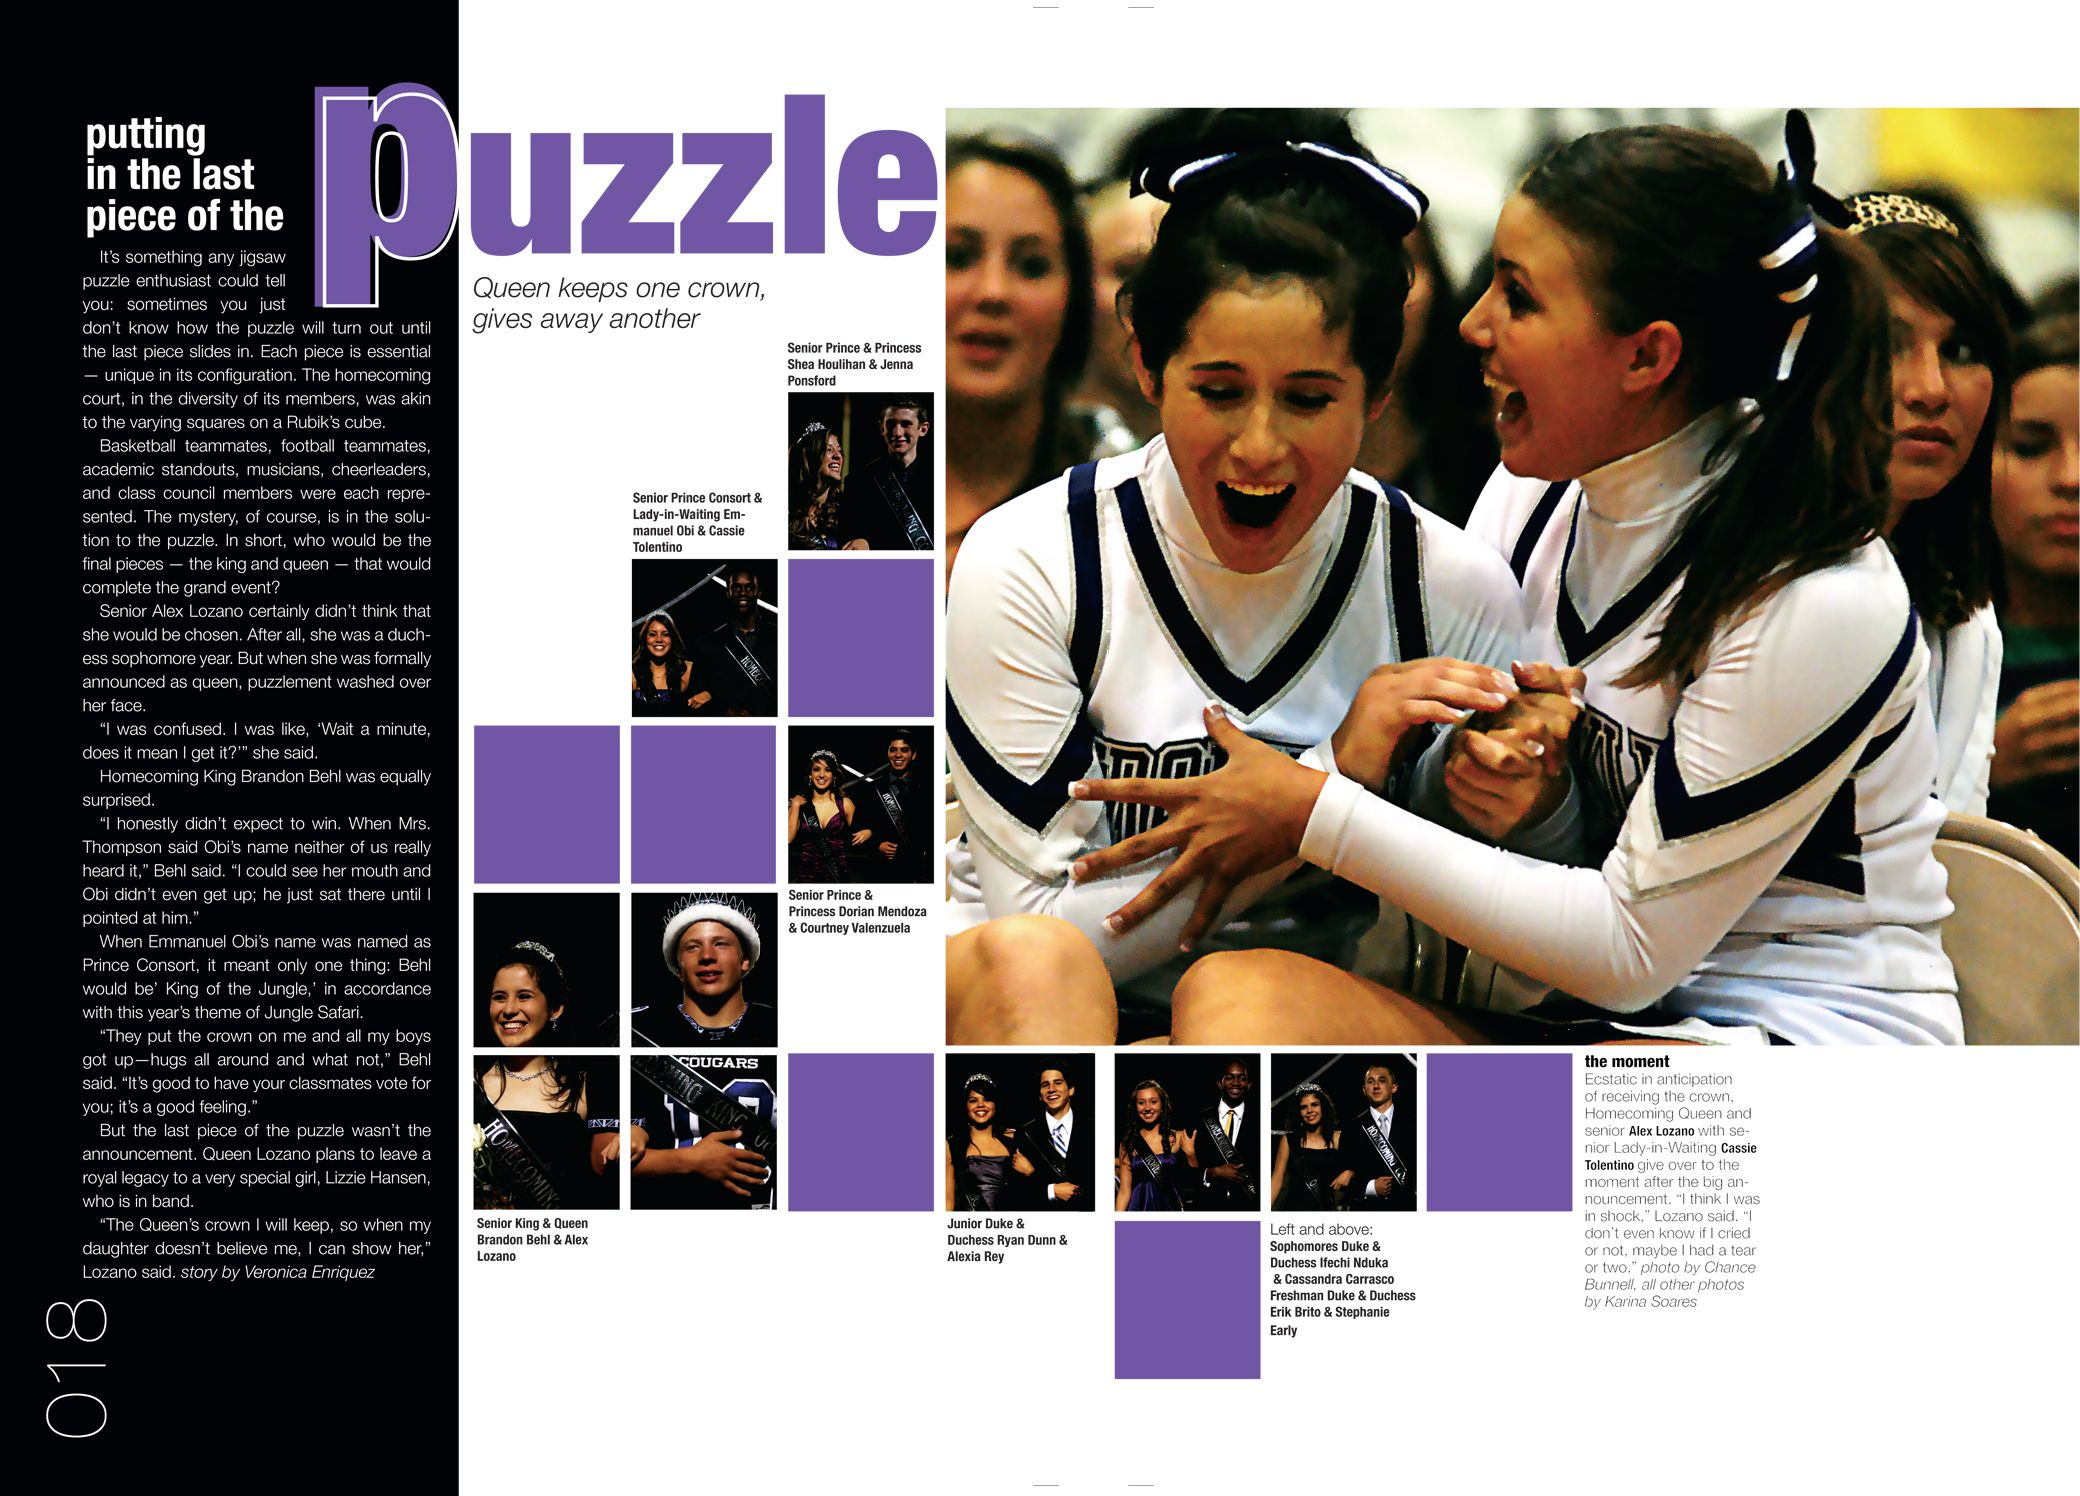 17 best images about yearbook ideas on pinterest spreads yearbook design and yearbook photos - Yearbook Design Ideas